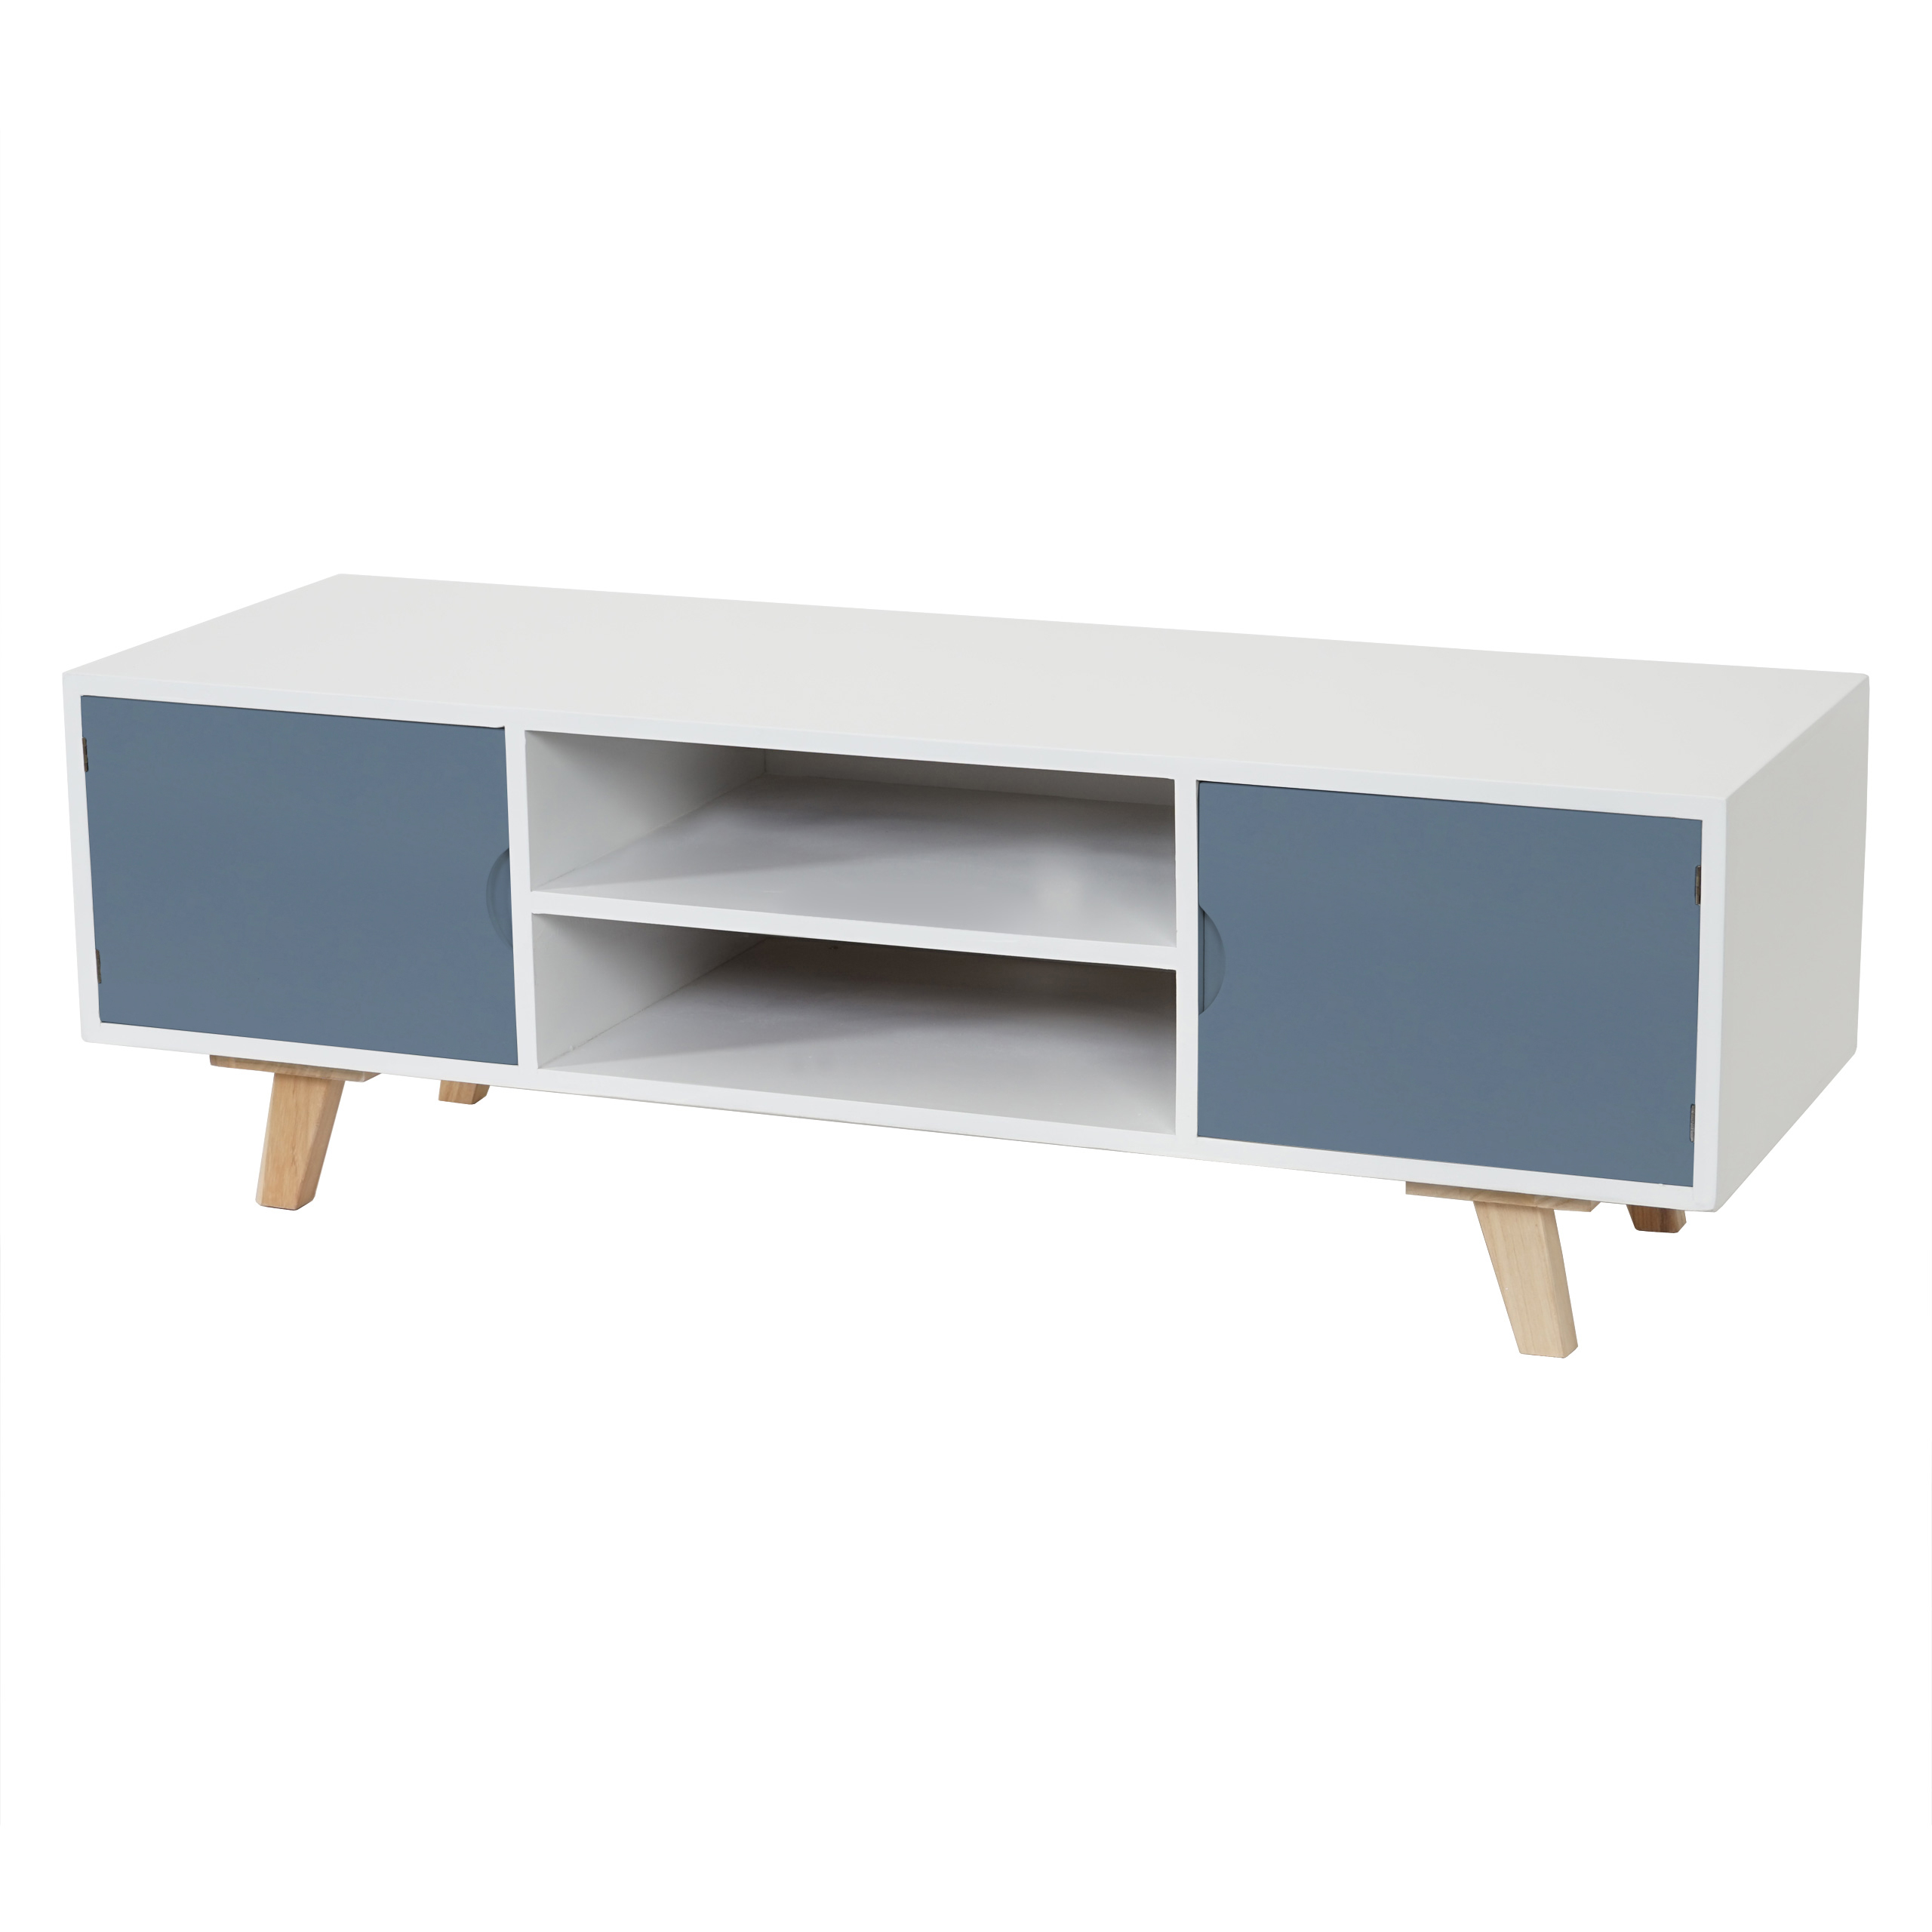 lowboard vaasa t256 tv rack fernsehtisch retro design. Black Bedroom Furniture Sets. Home Design Ideas